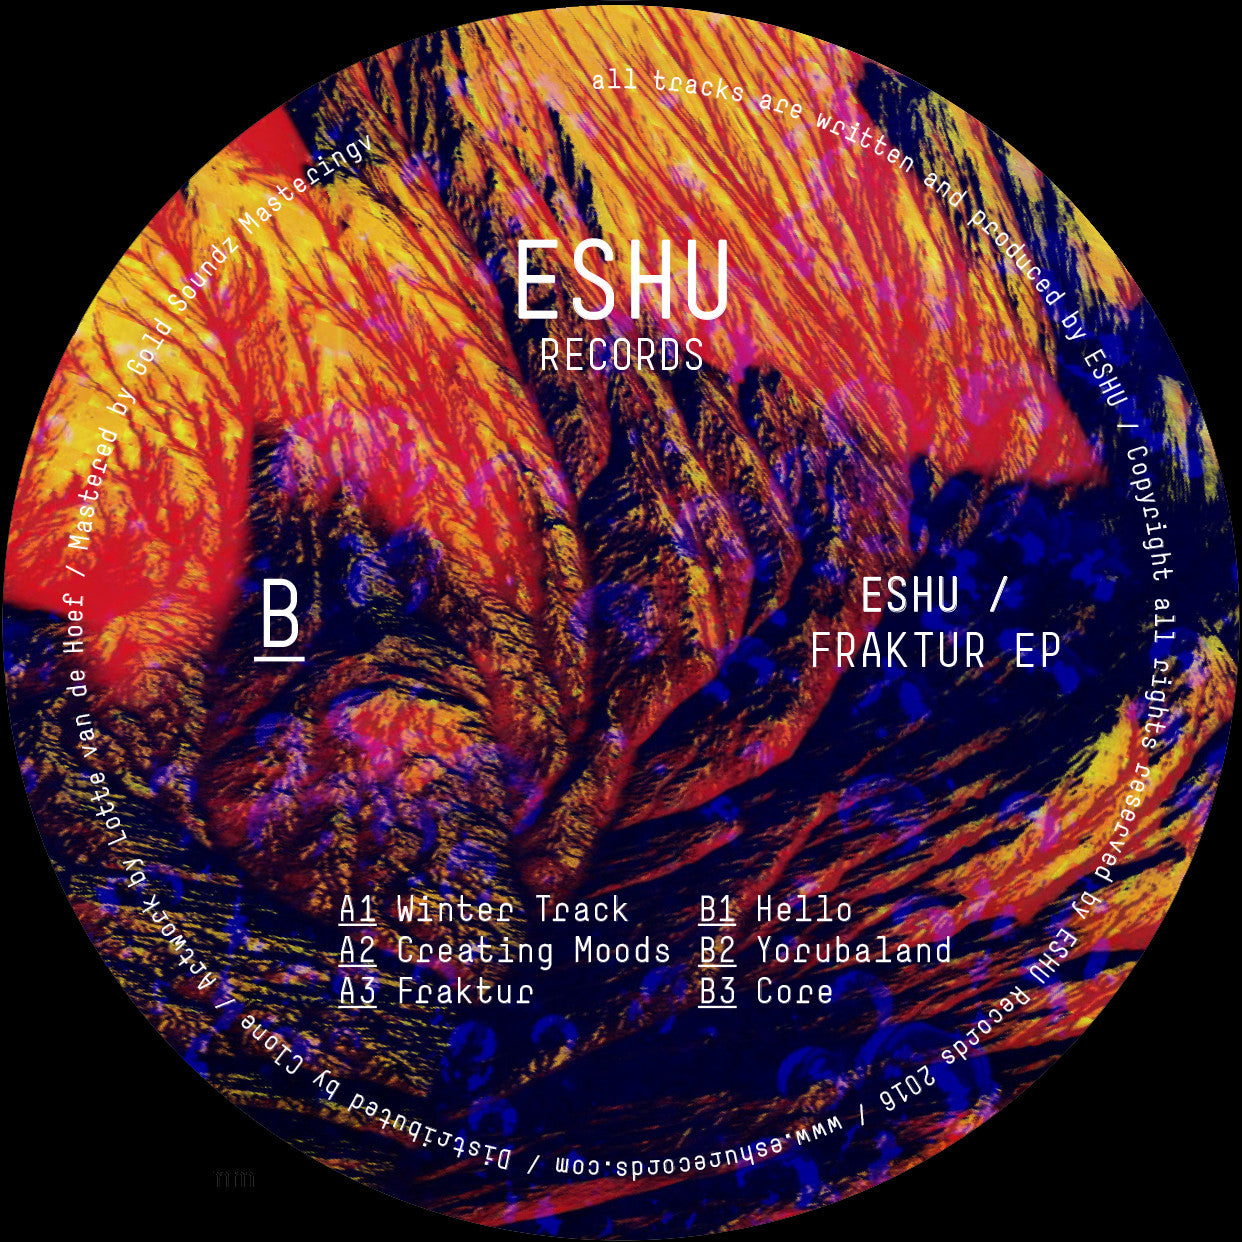 Eshu - Fraktur EP , Vinyl - ESHU Records, Unearthed Sounds